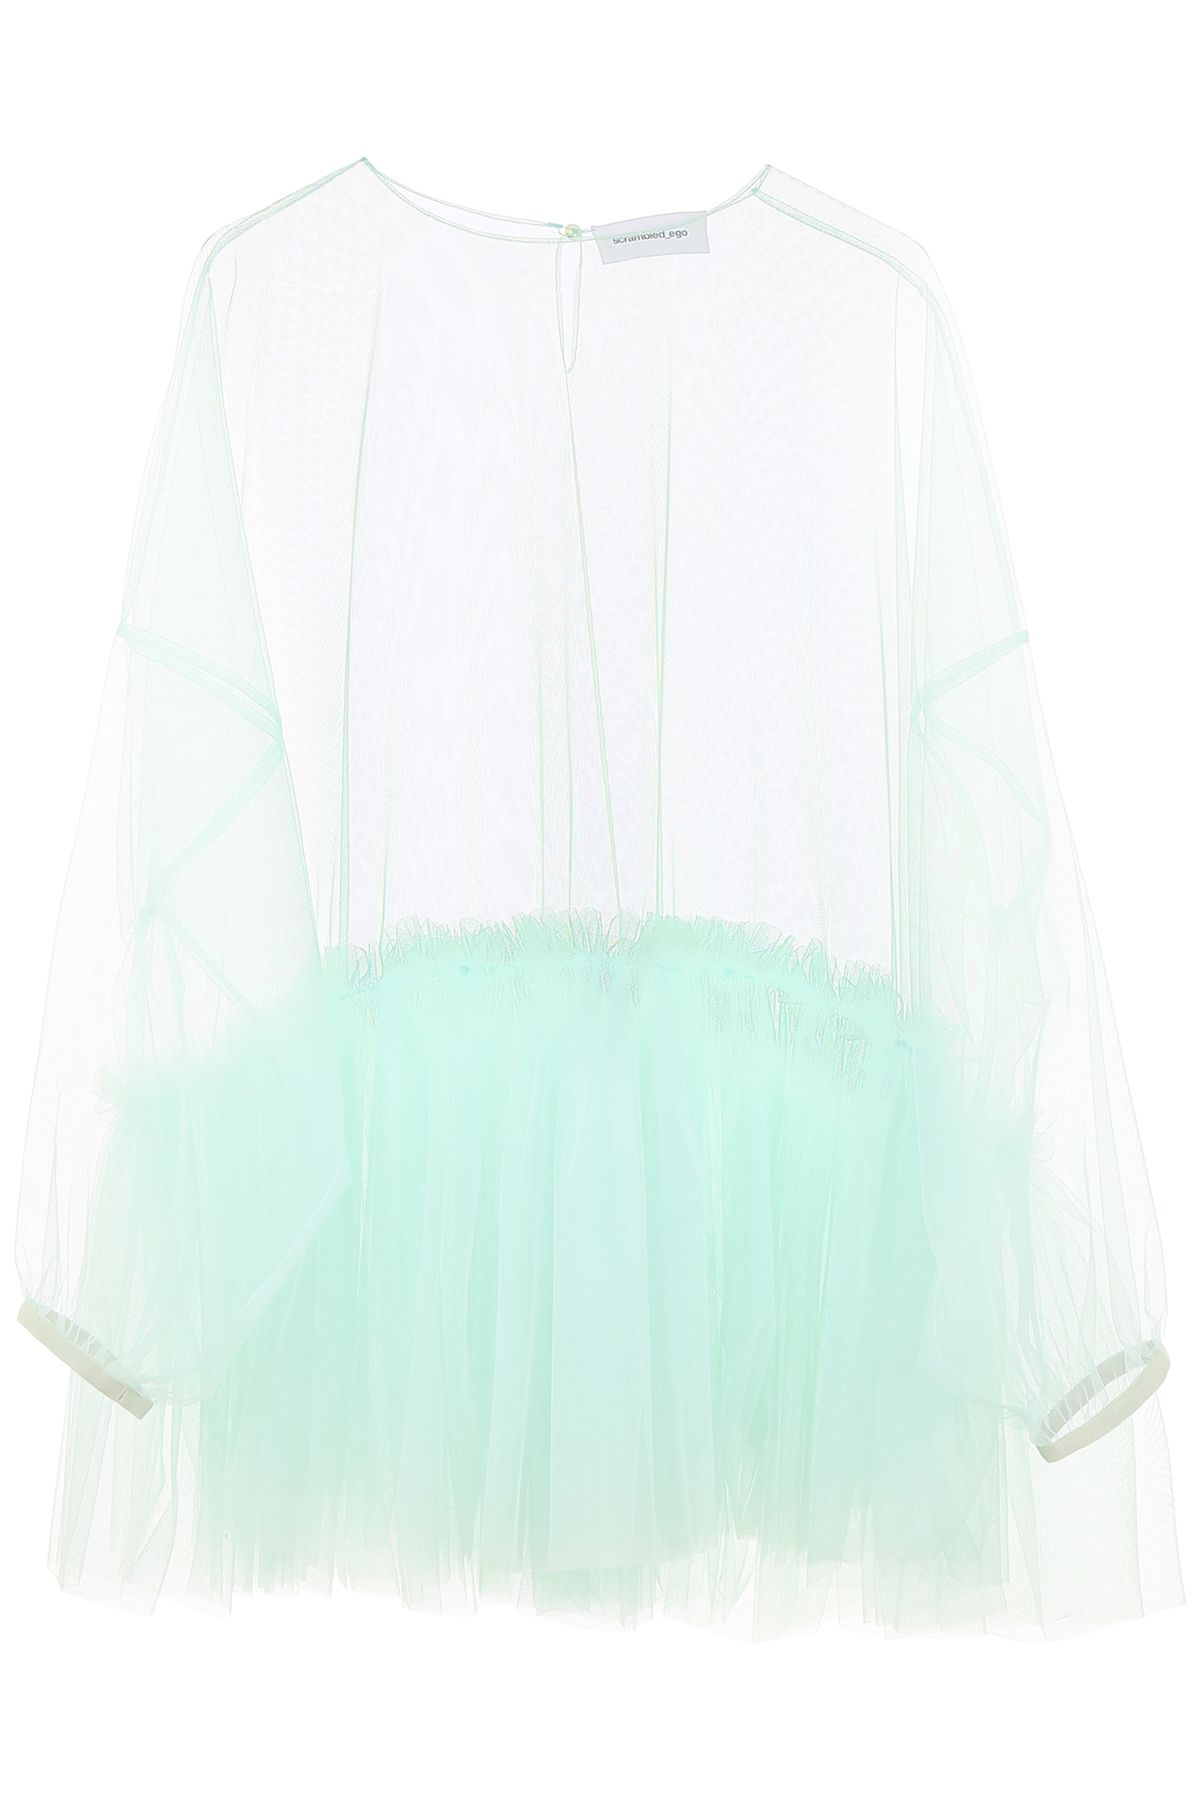 SCRAMBLED EGO Tulle Blouse in Light Blue